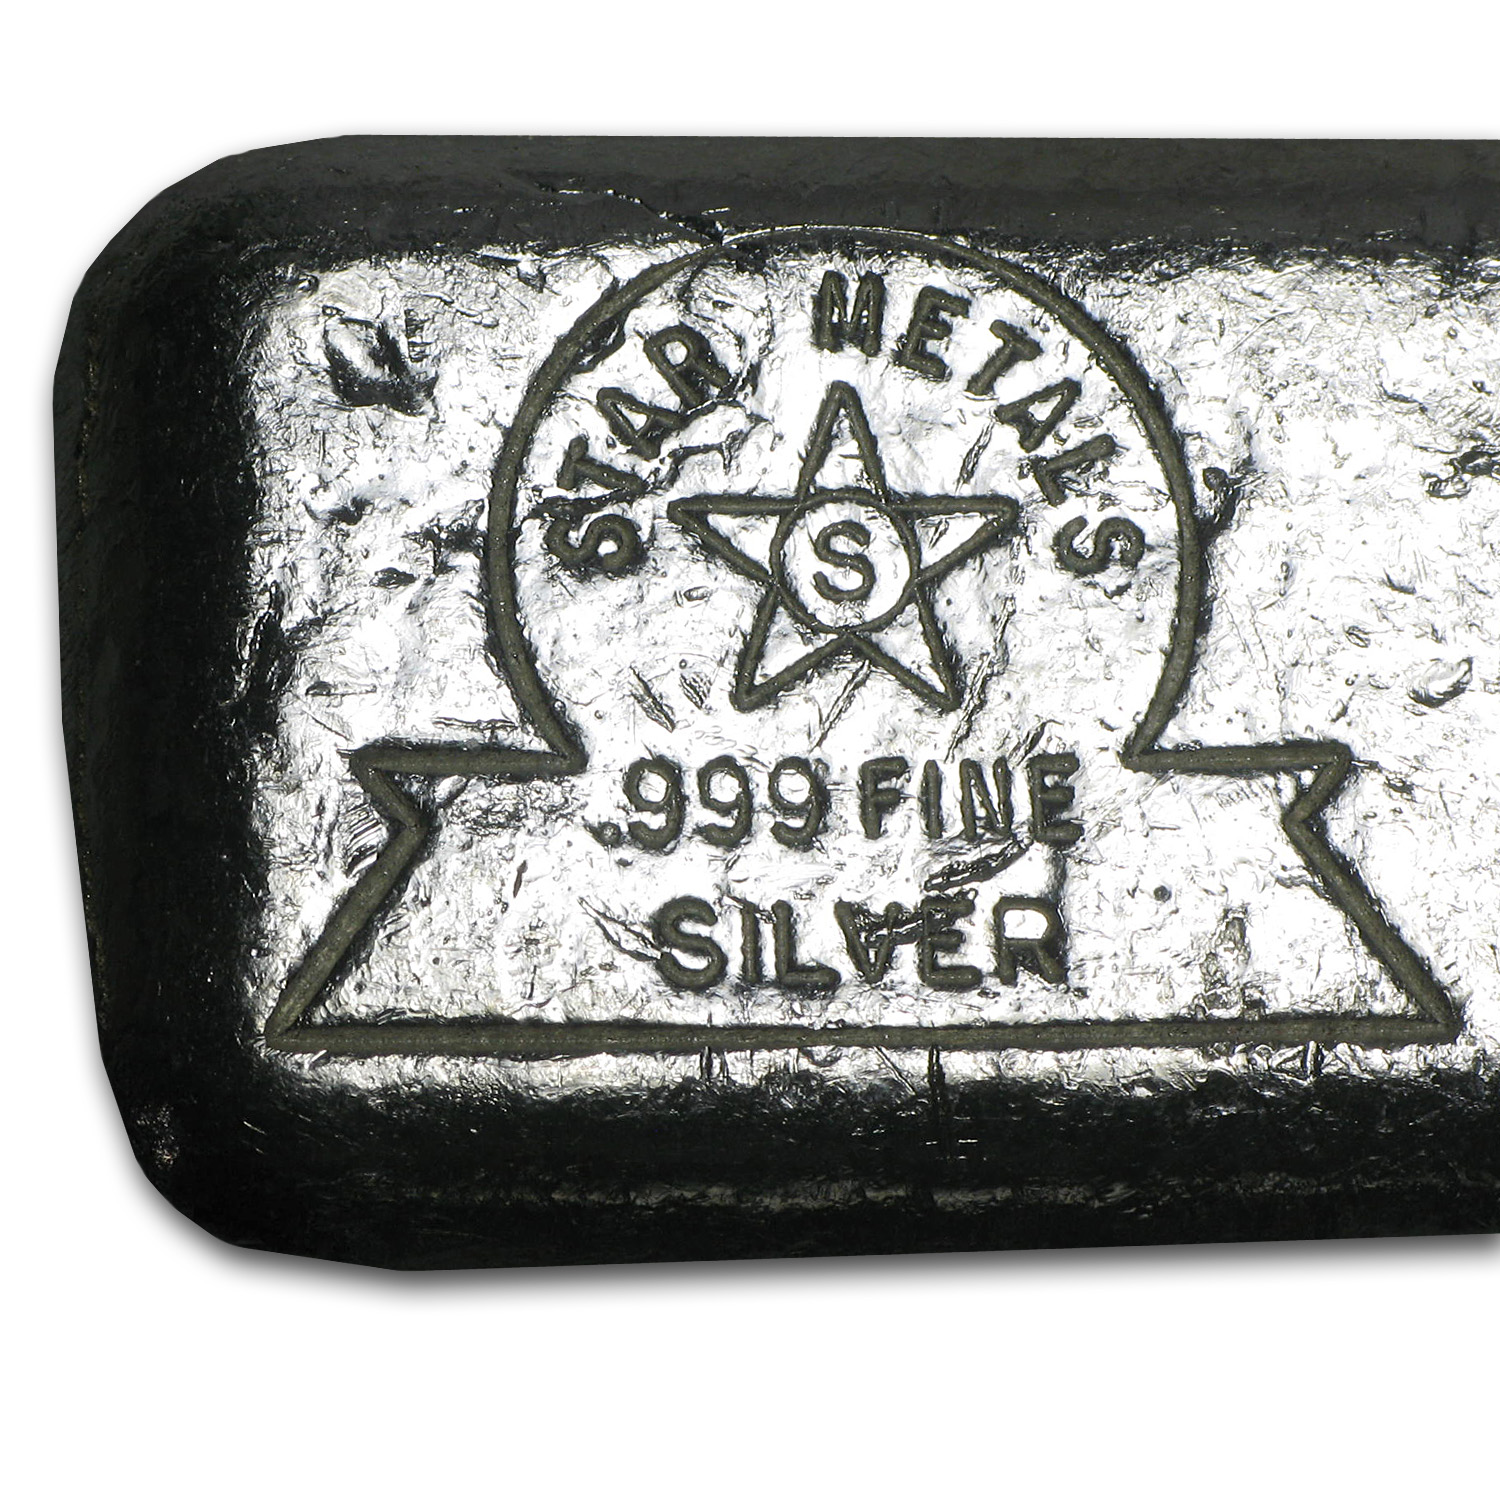 9.52 oz Silver Bars - Star Metals